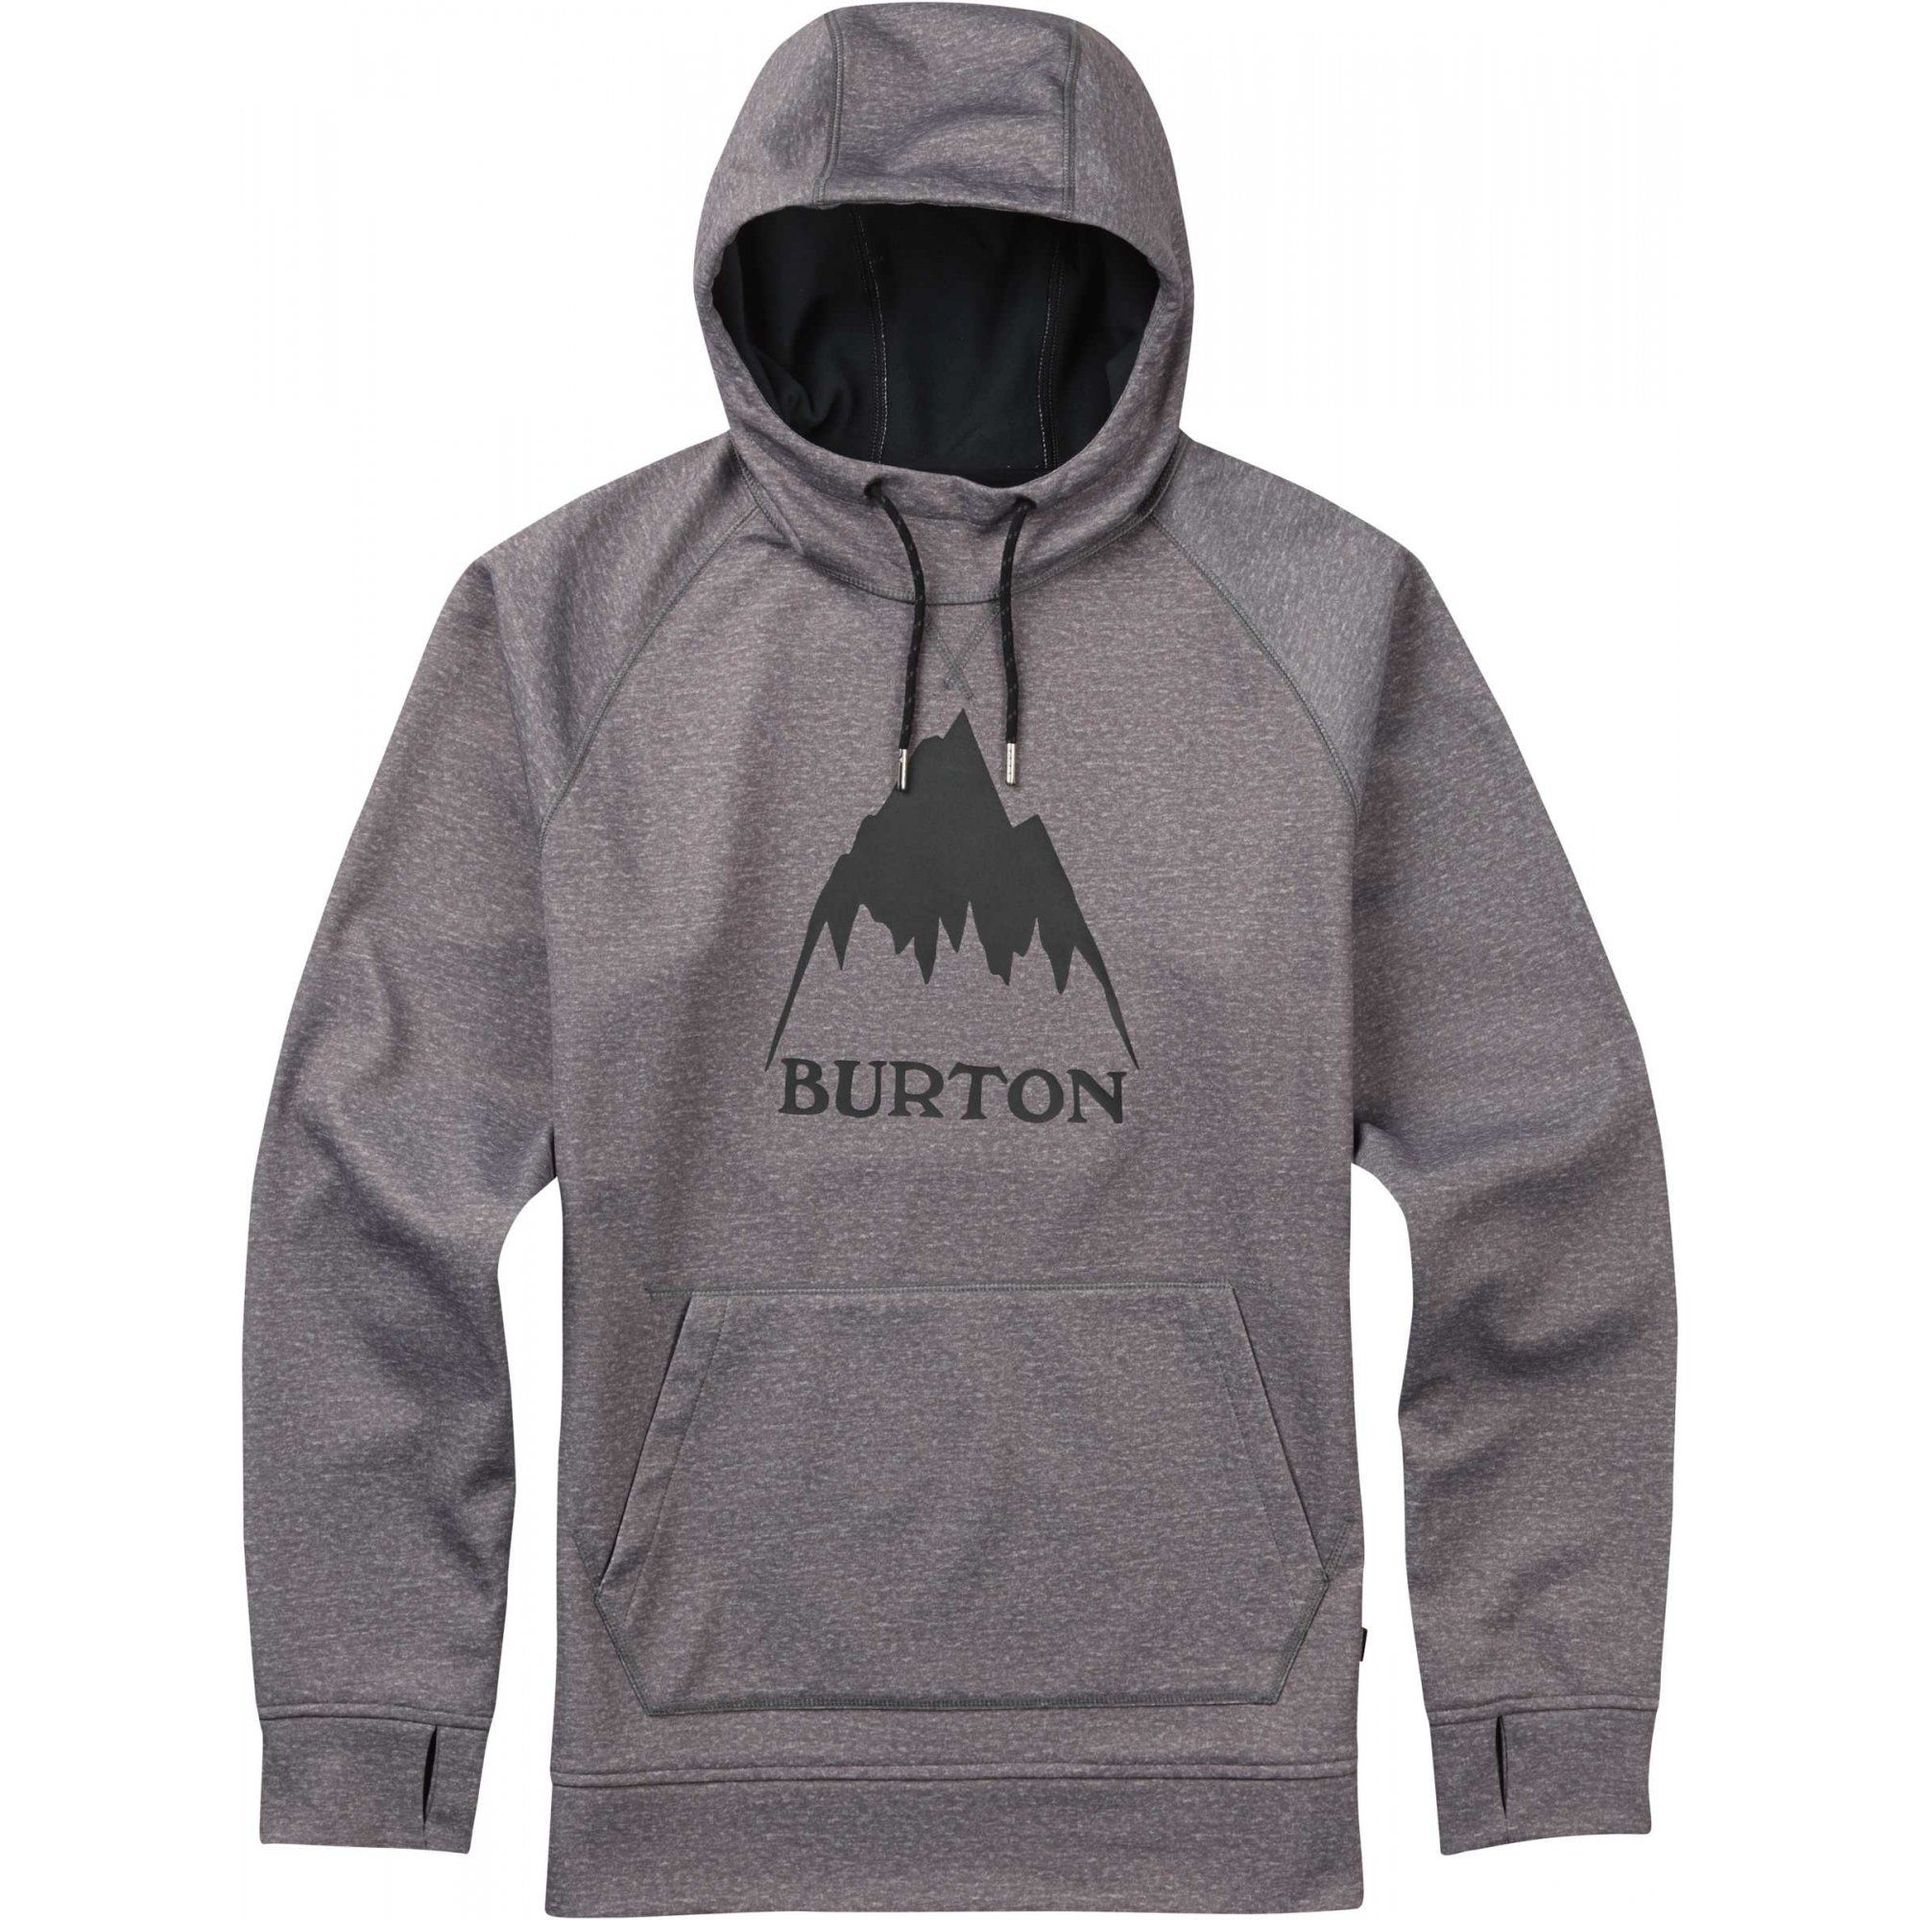 BLUZA BURTON CROWN BONDED PULLOVER HOODIE MONUMENT HEATHER